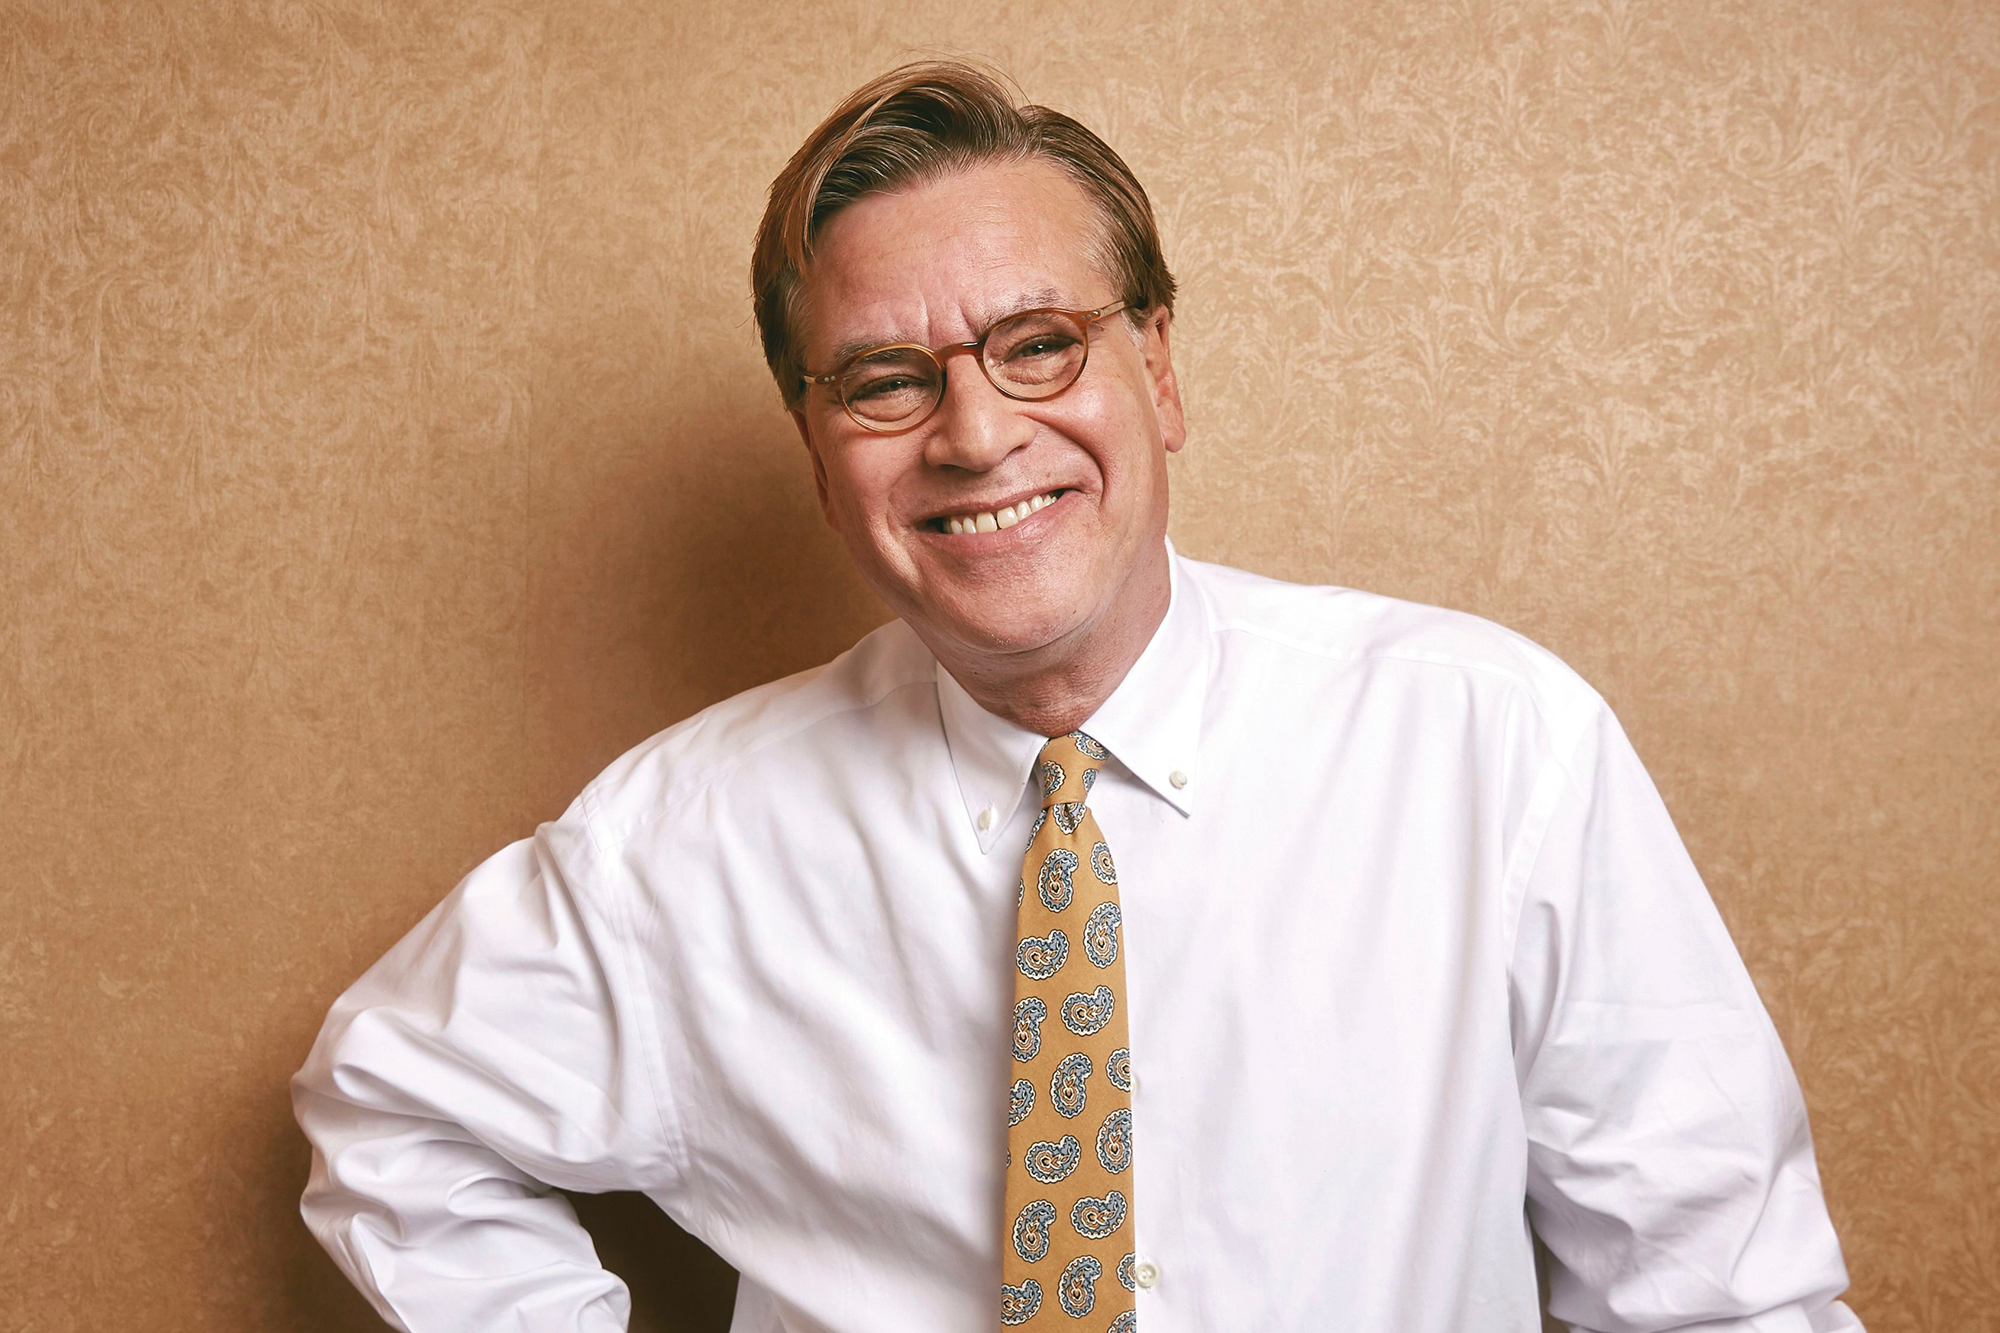 Aaron Sorkin's Advice to Democrats: 'Stop Acting Like Young People'